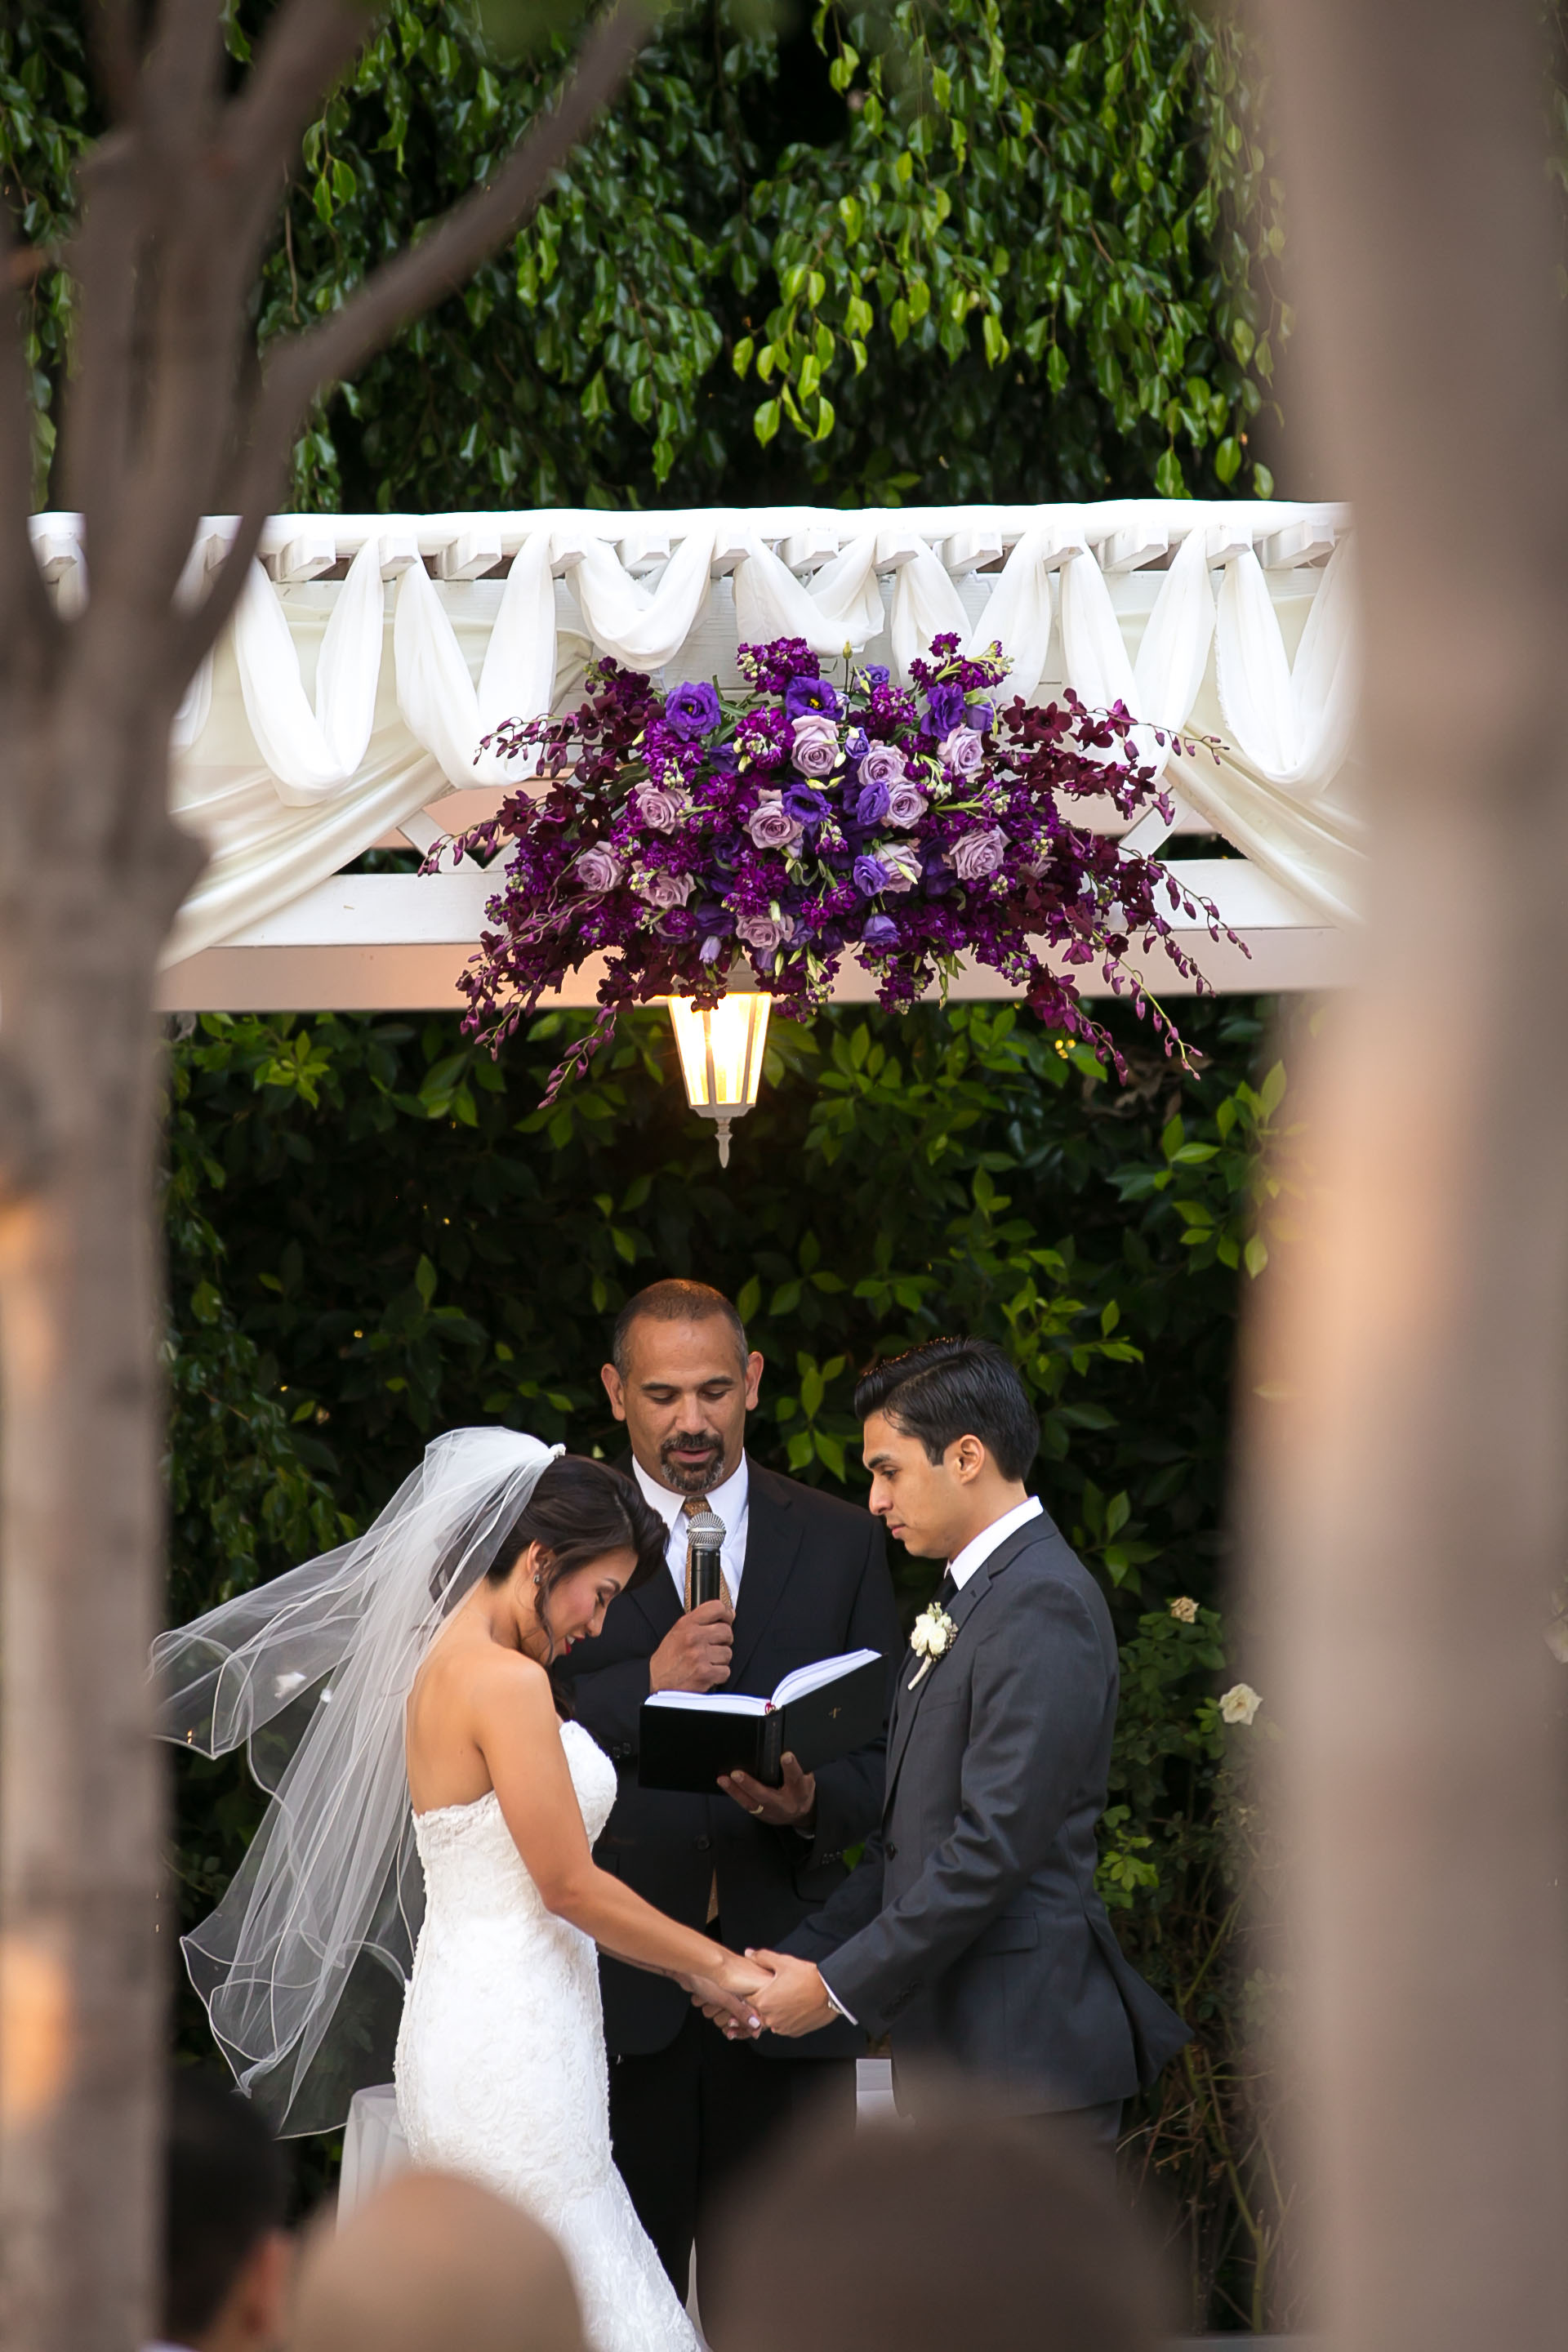 SPORTSMENS LODGE WEDDING LOS ANGELES WEDDING PHOTOGRAPHER CHRIS HOLT PHOTOGRAPHY_024.jpg